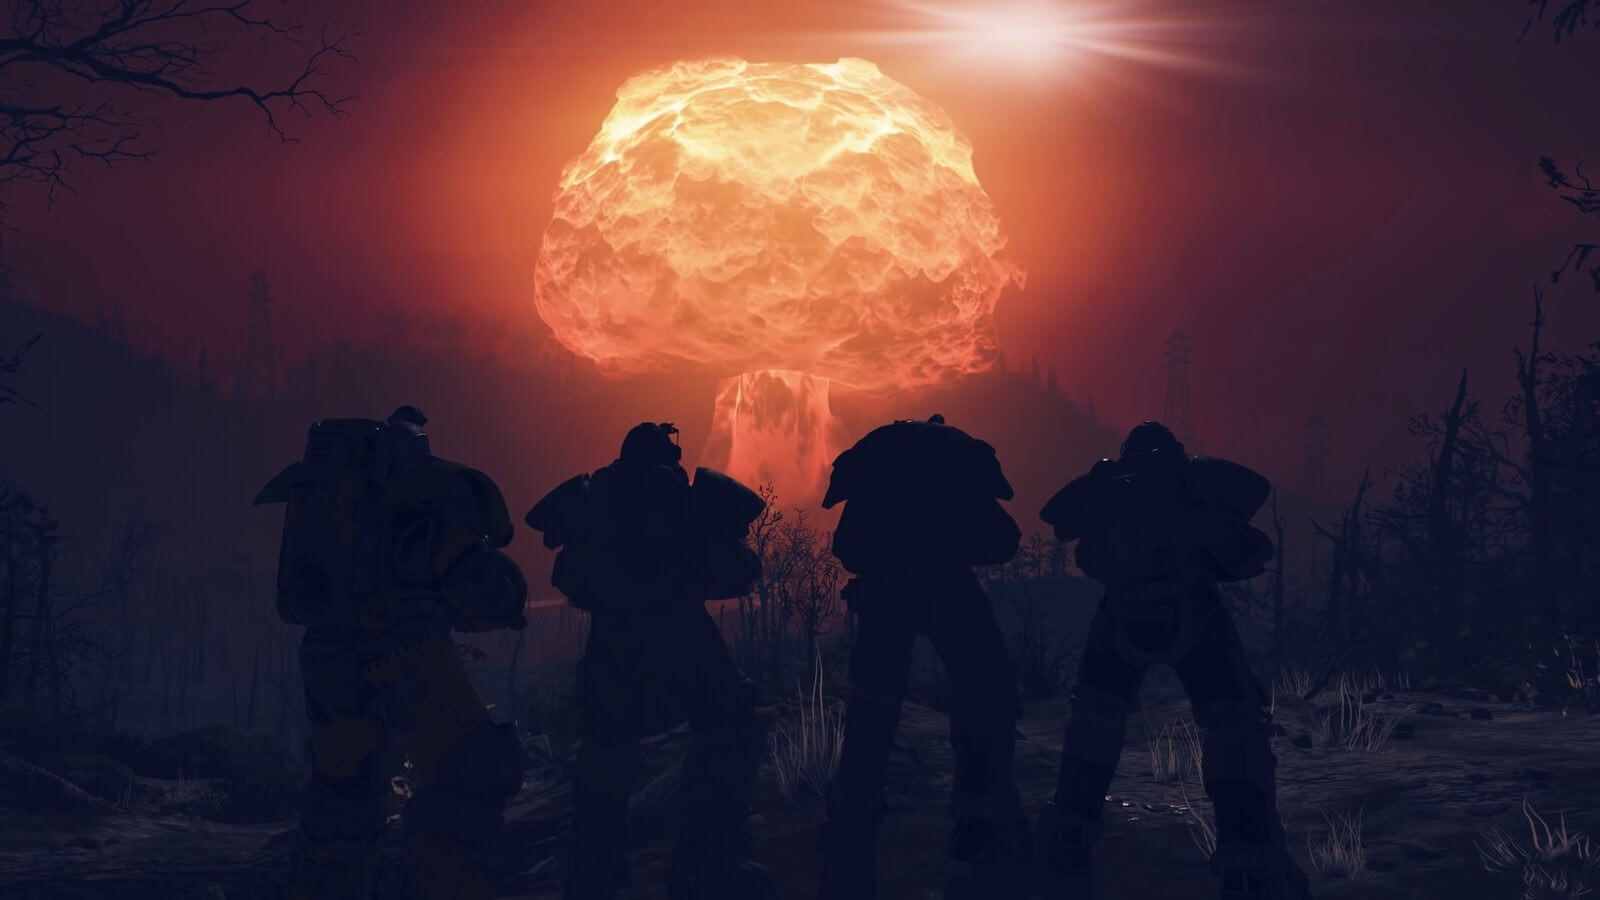 Fallout 76 Customer Data May Have Been Leaked Inadvertently By Bethesda Support